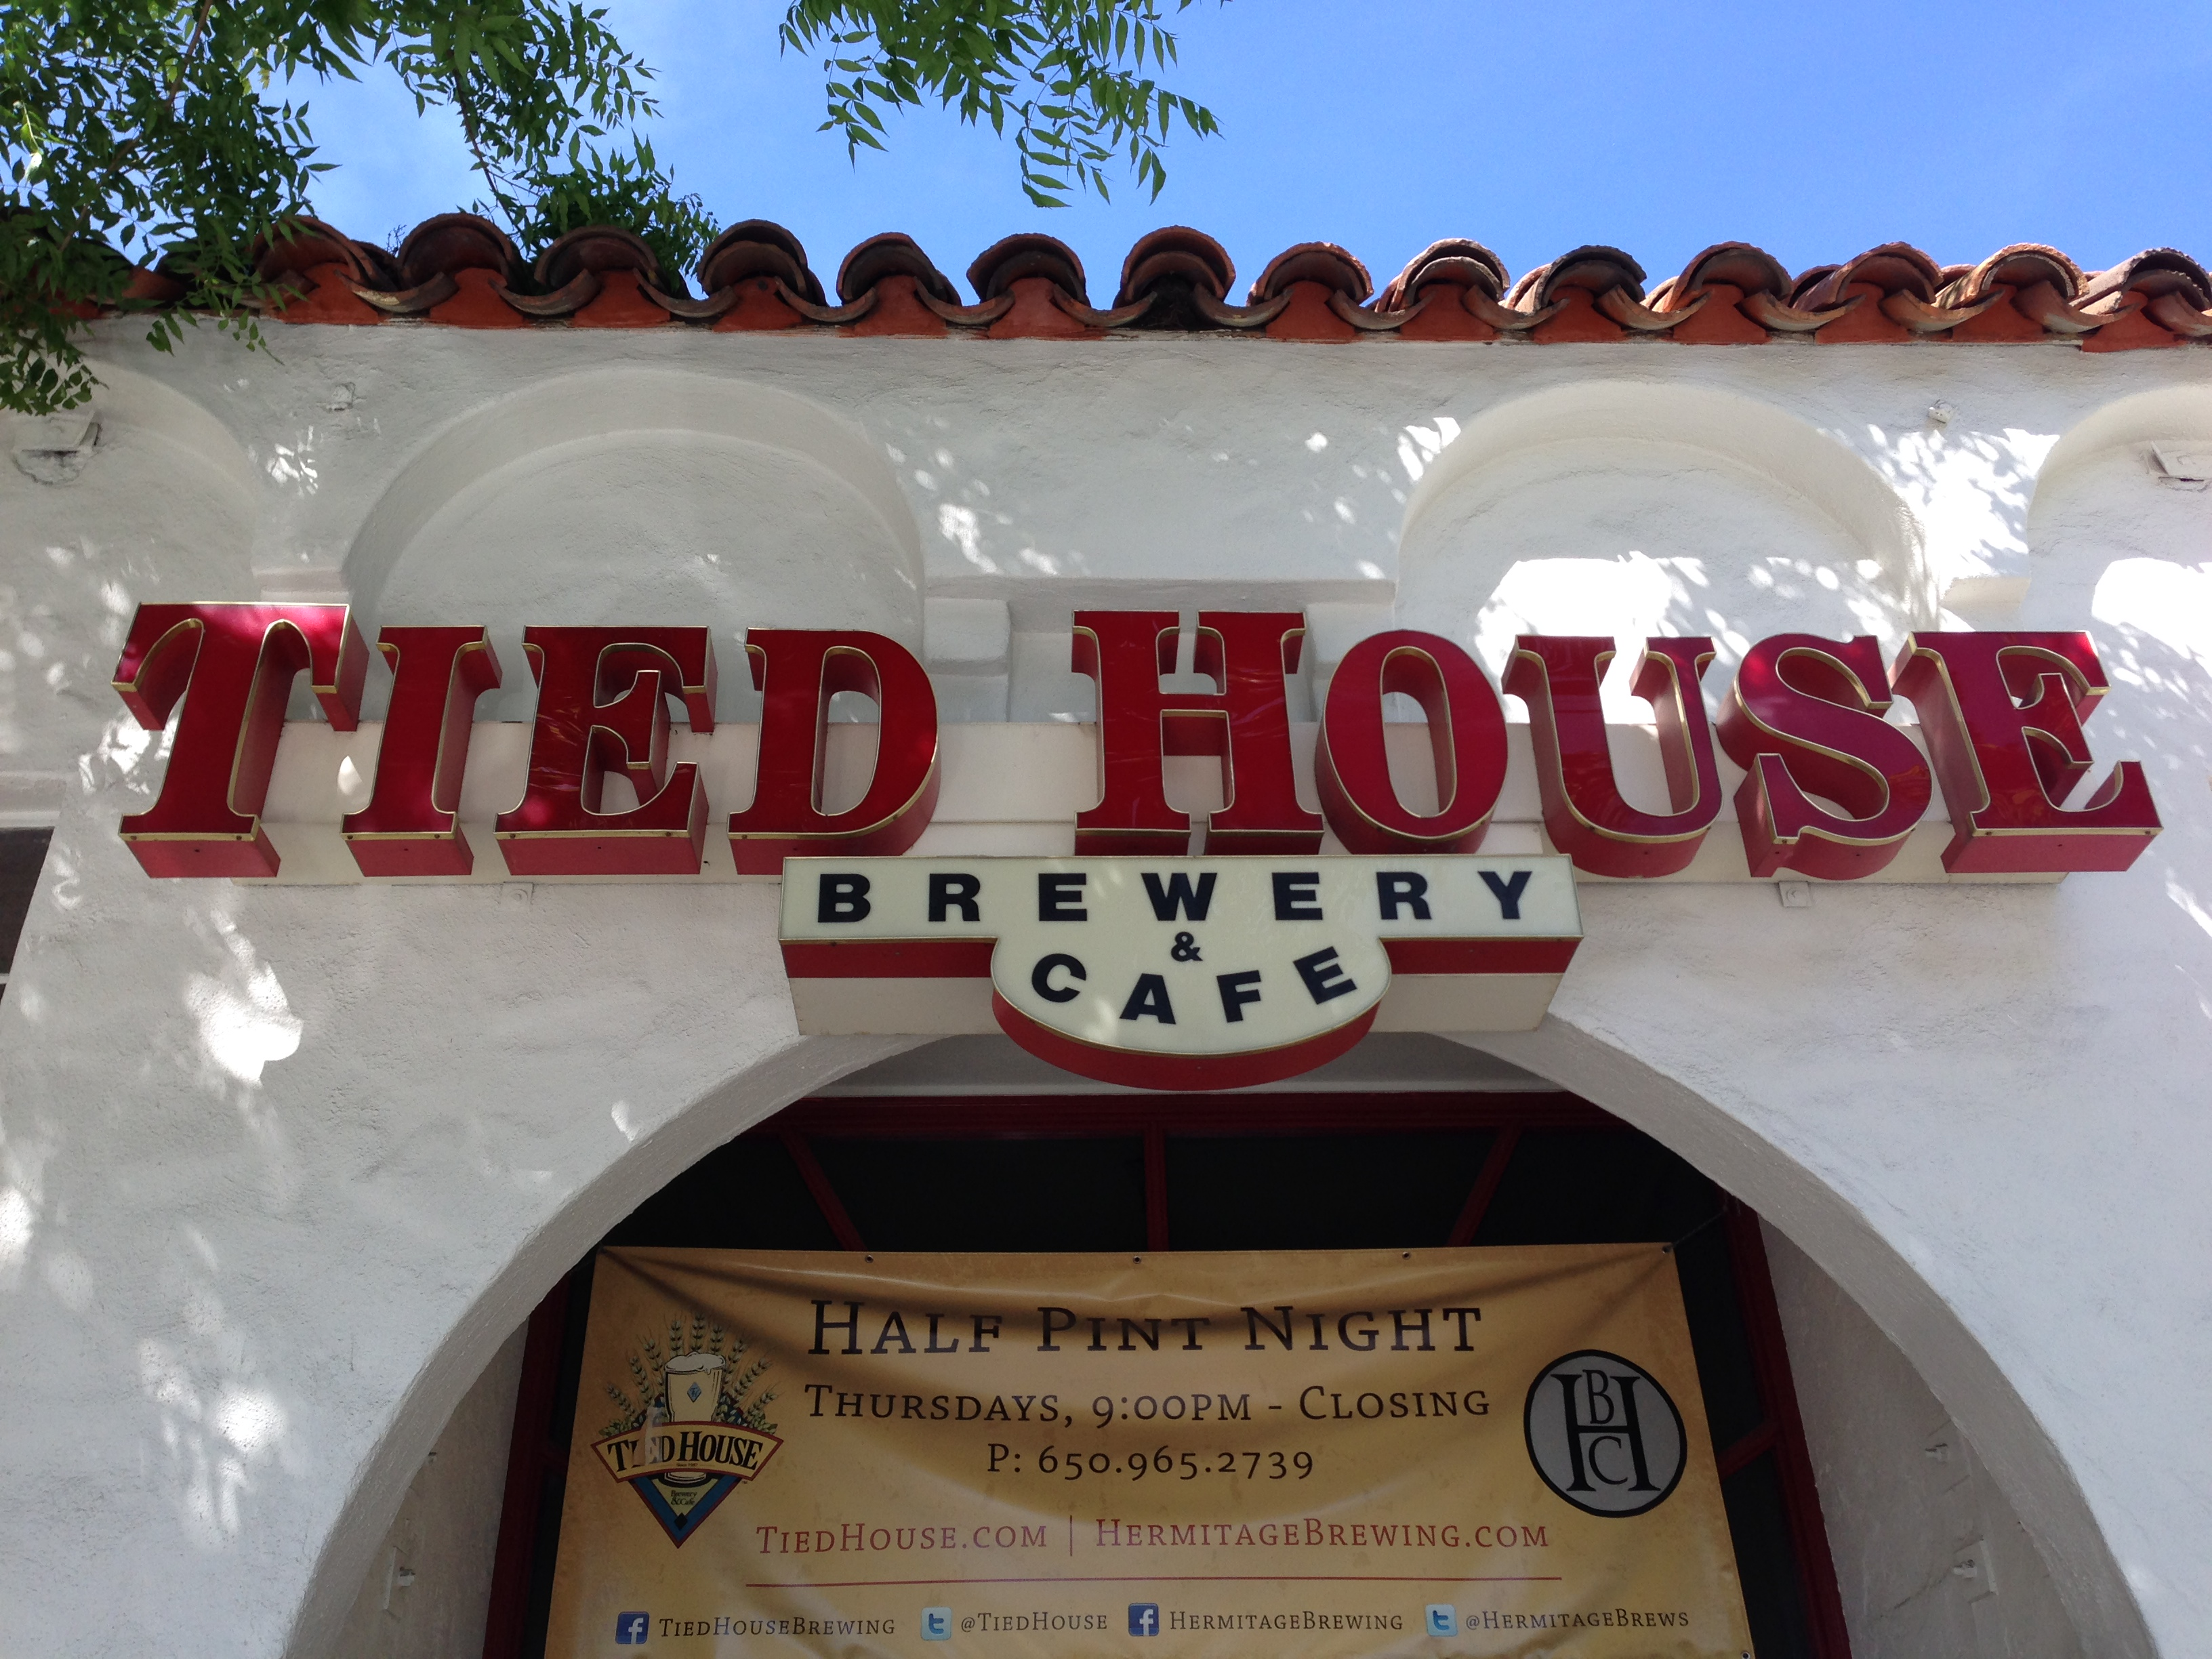 Tied House Brewery Cafe Mountain View Ca I Stop For Hops